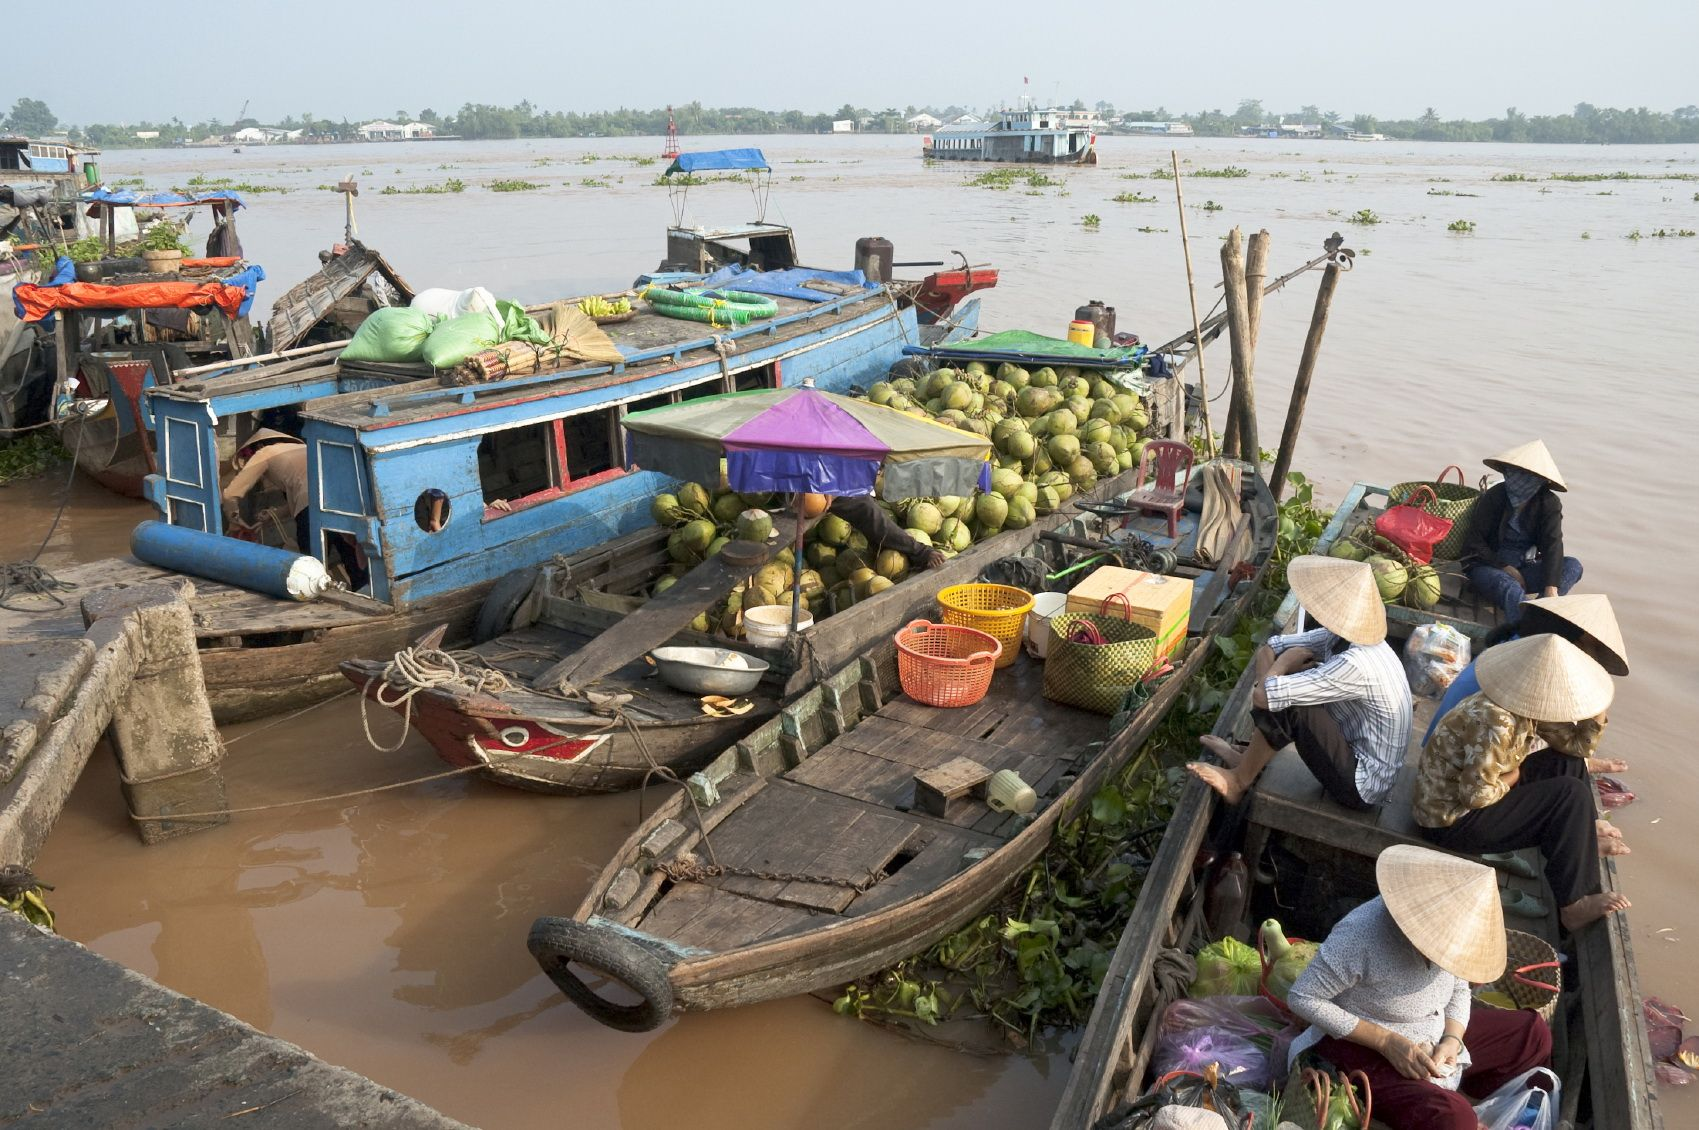 Vietnam's Mekong Delta has some lovely floating markets. Time your trip right as certain 'lunar' days see markets busier than other days. Aslo avoid after the Vietnamese New Year period as the vendors return to their villages for up to a month during this time.